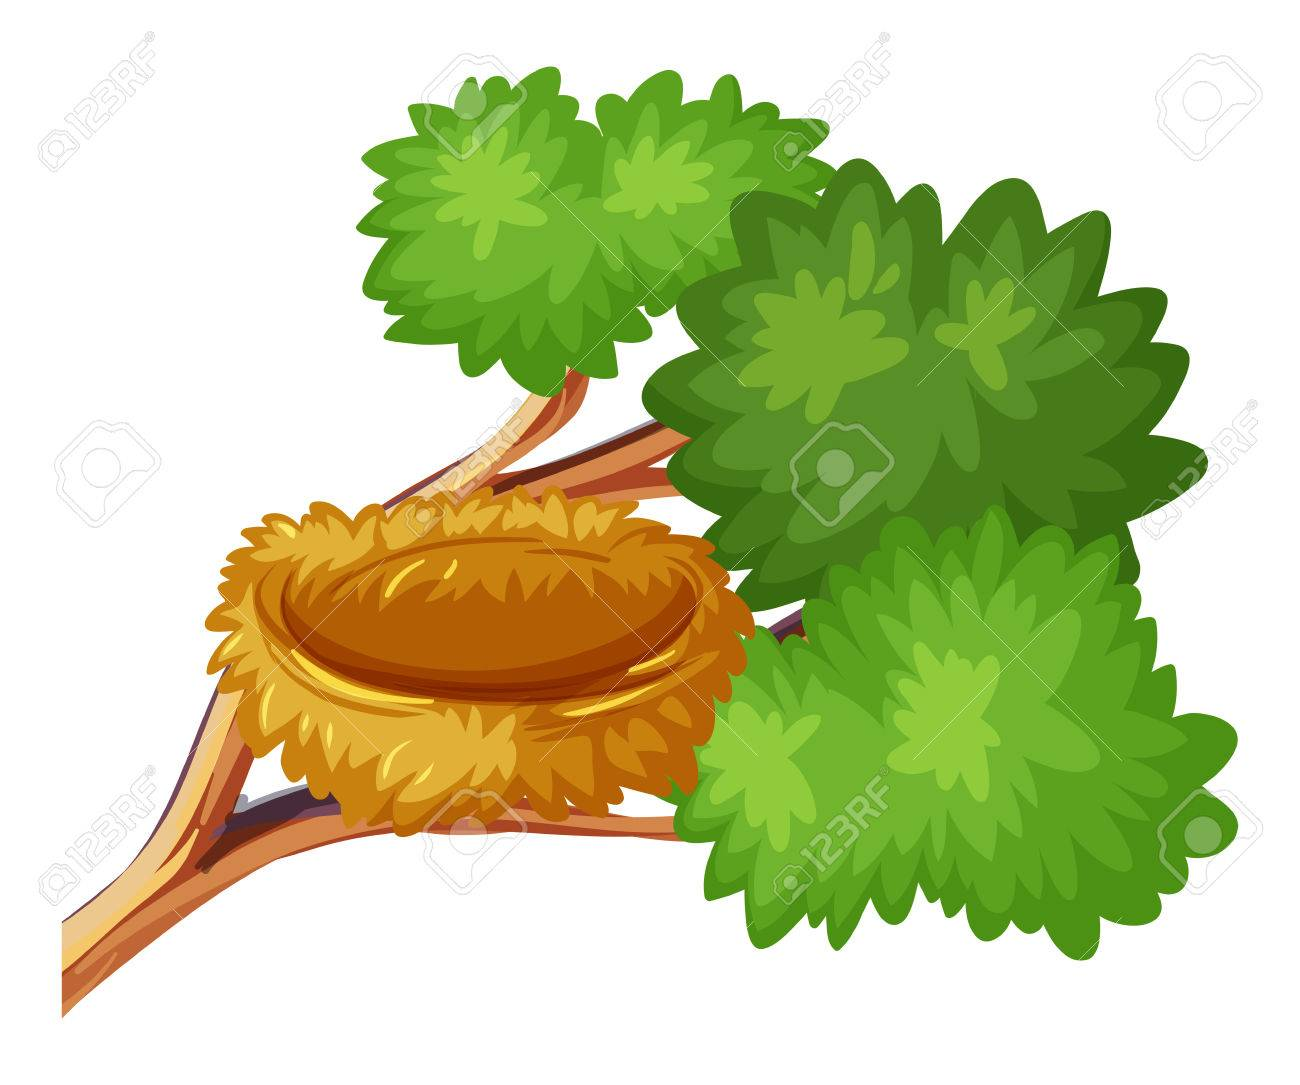 Bird nest on the branch illustration.